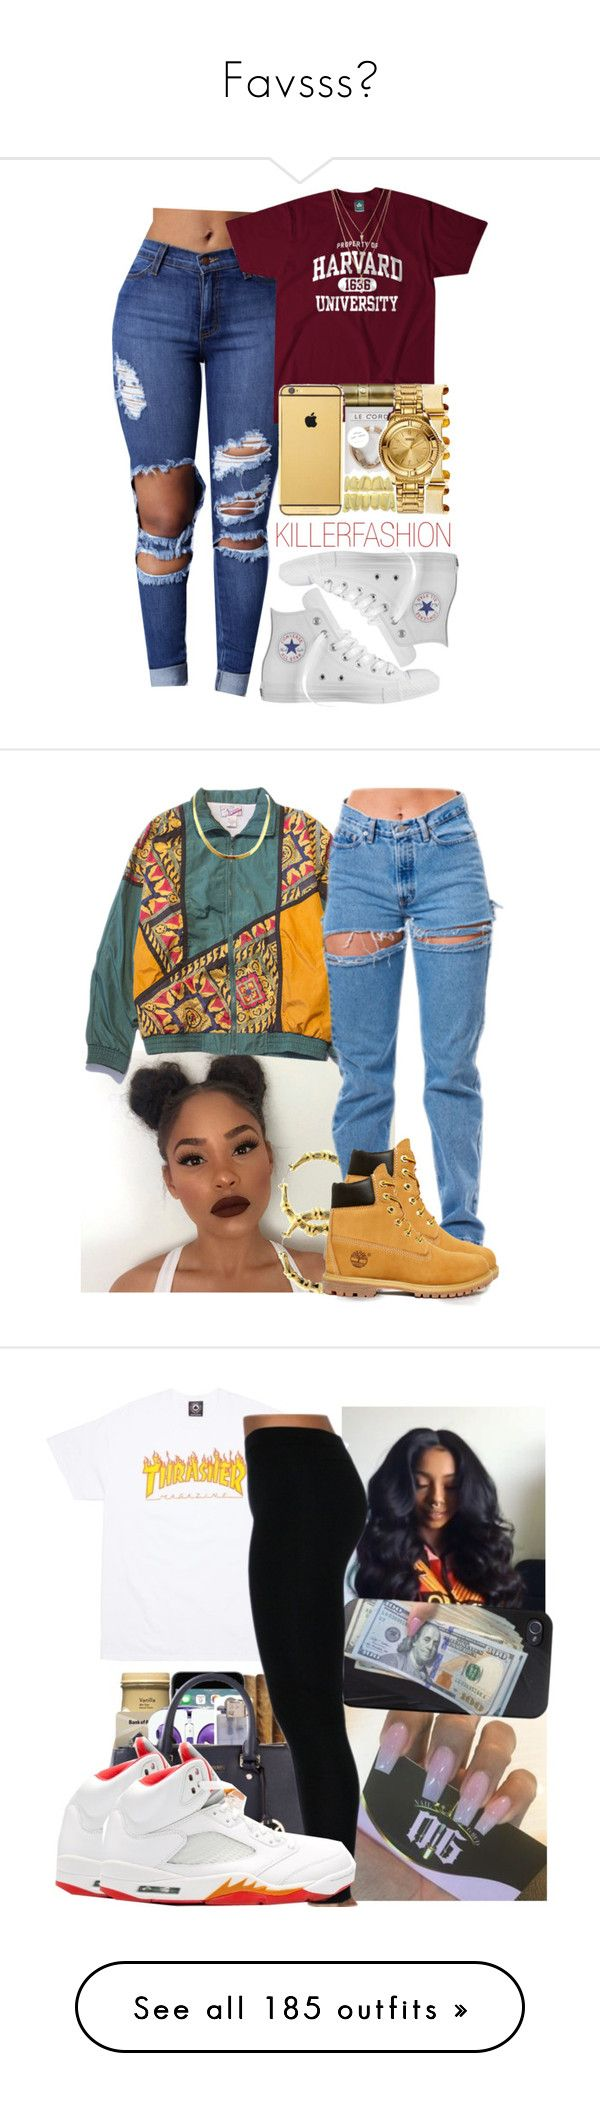 """Favsss✨"" by laiixo ❤ liked on Polyvore featuring Converse, Timberland, Retrò, Boohoo, Poetic Justice, MICHAEL Michael Kors, Forever 21, Monki, Moschino and UGG Australia"